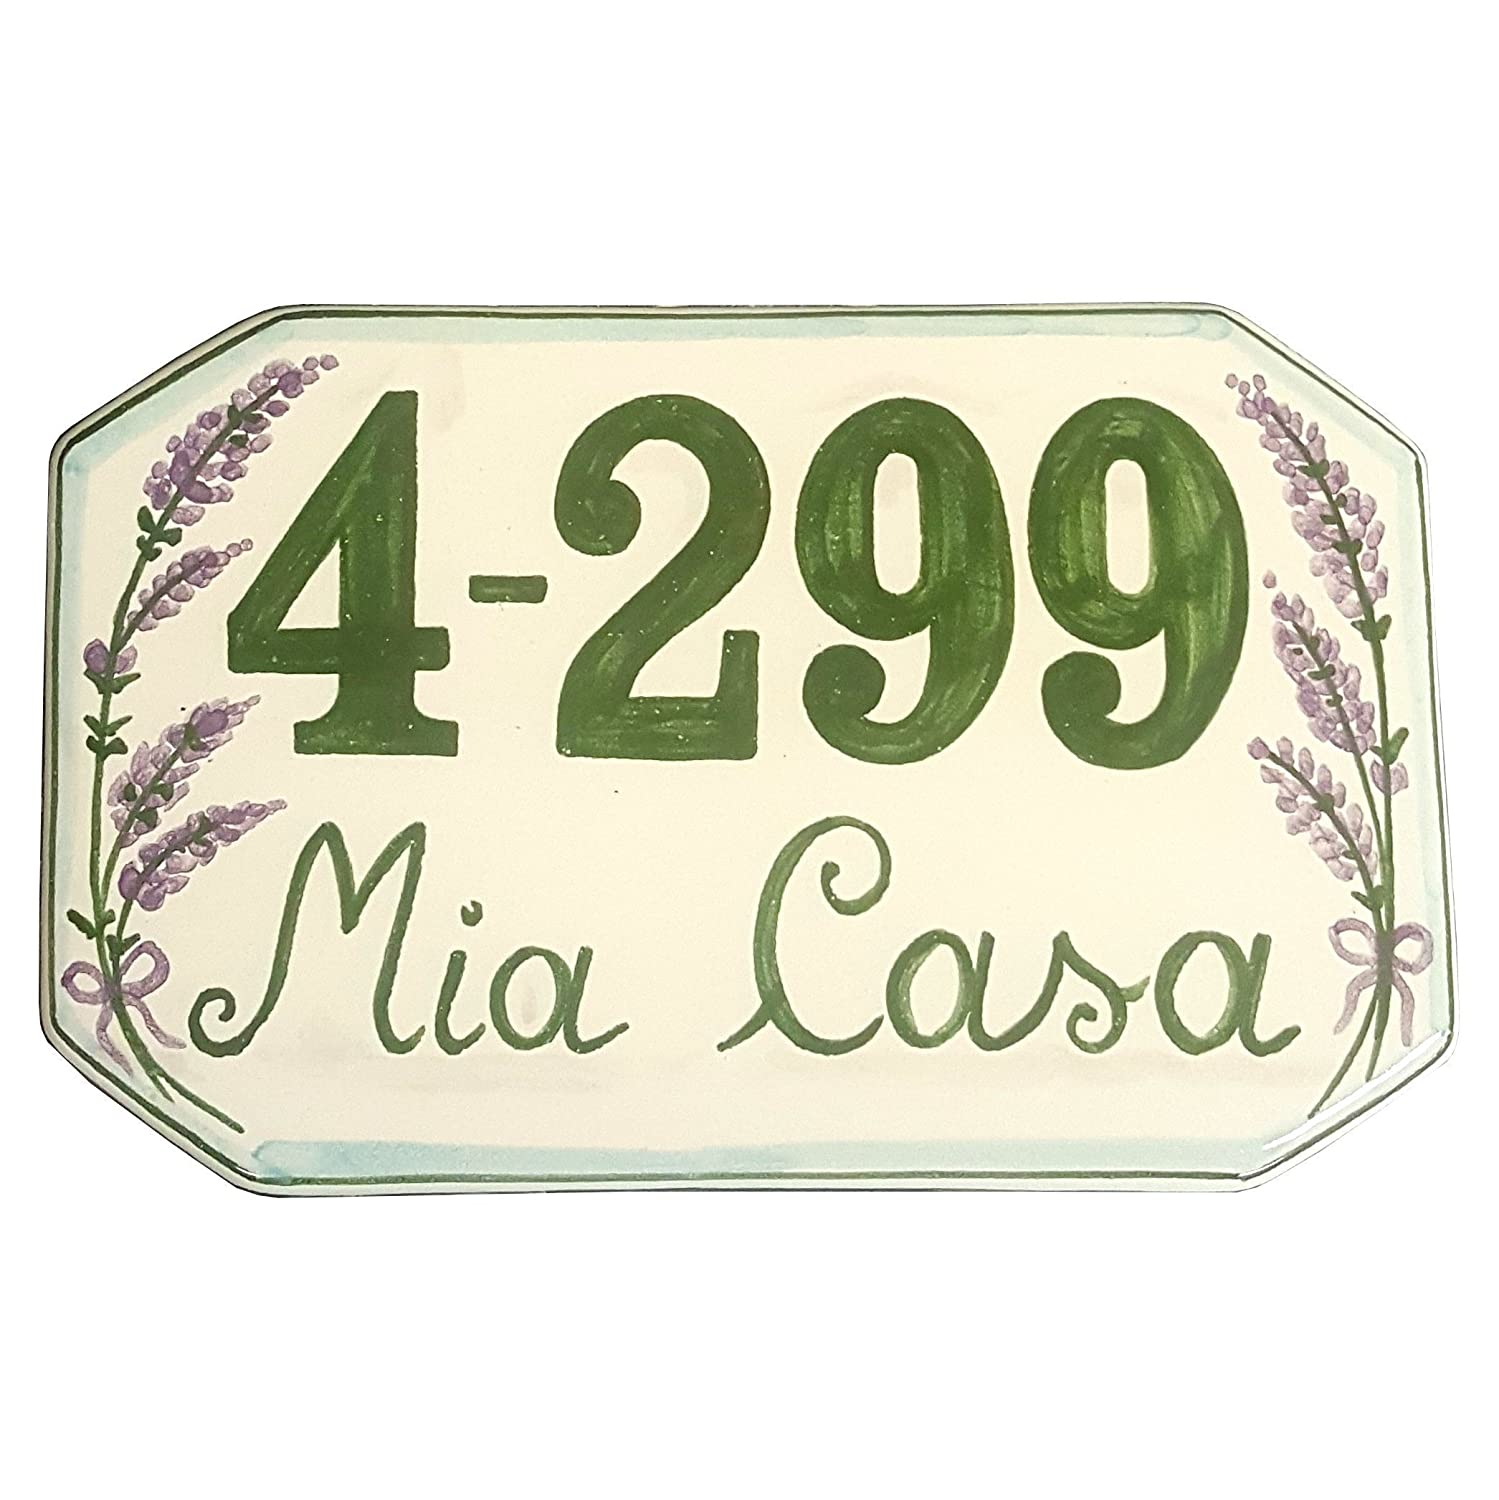 Amazon ceramiche darte parrini italian ceramic art pottery amazon ceramiche darte parrini italian ceramic art pottery tile custom house number civic address plaques decorated lavender hand painted made in dailygadgetfo Choice Image